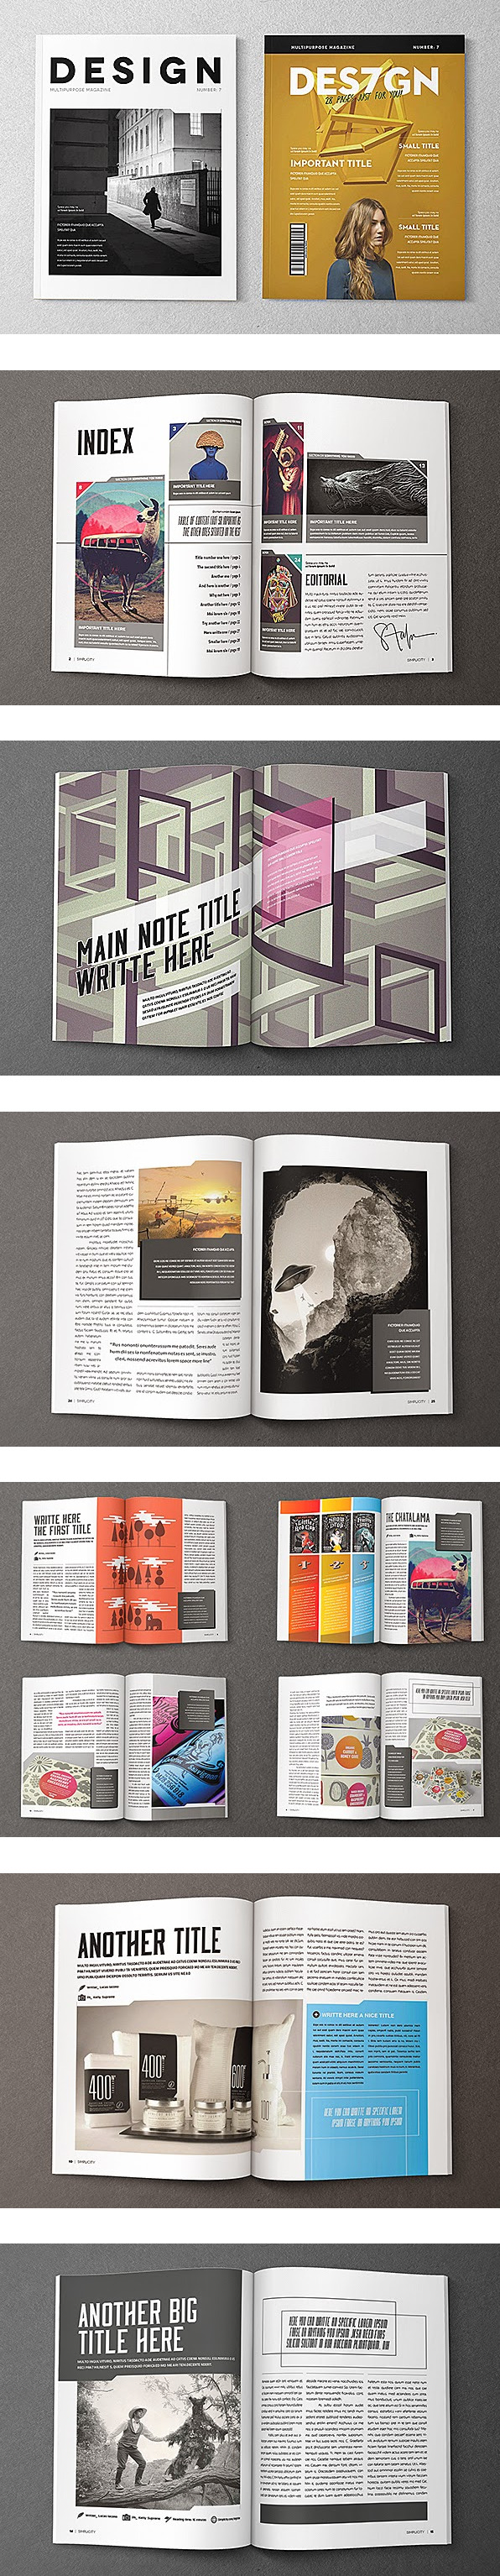 Spreading the Maglove - Free Indesign Magazine Templates | Design ...